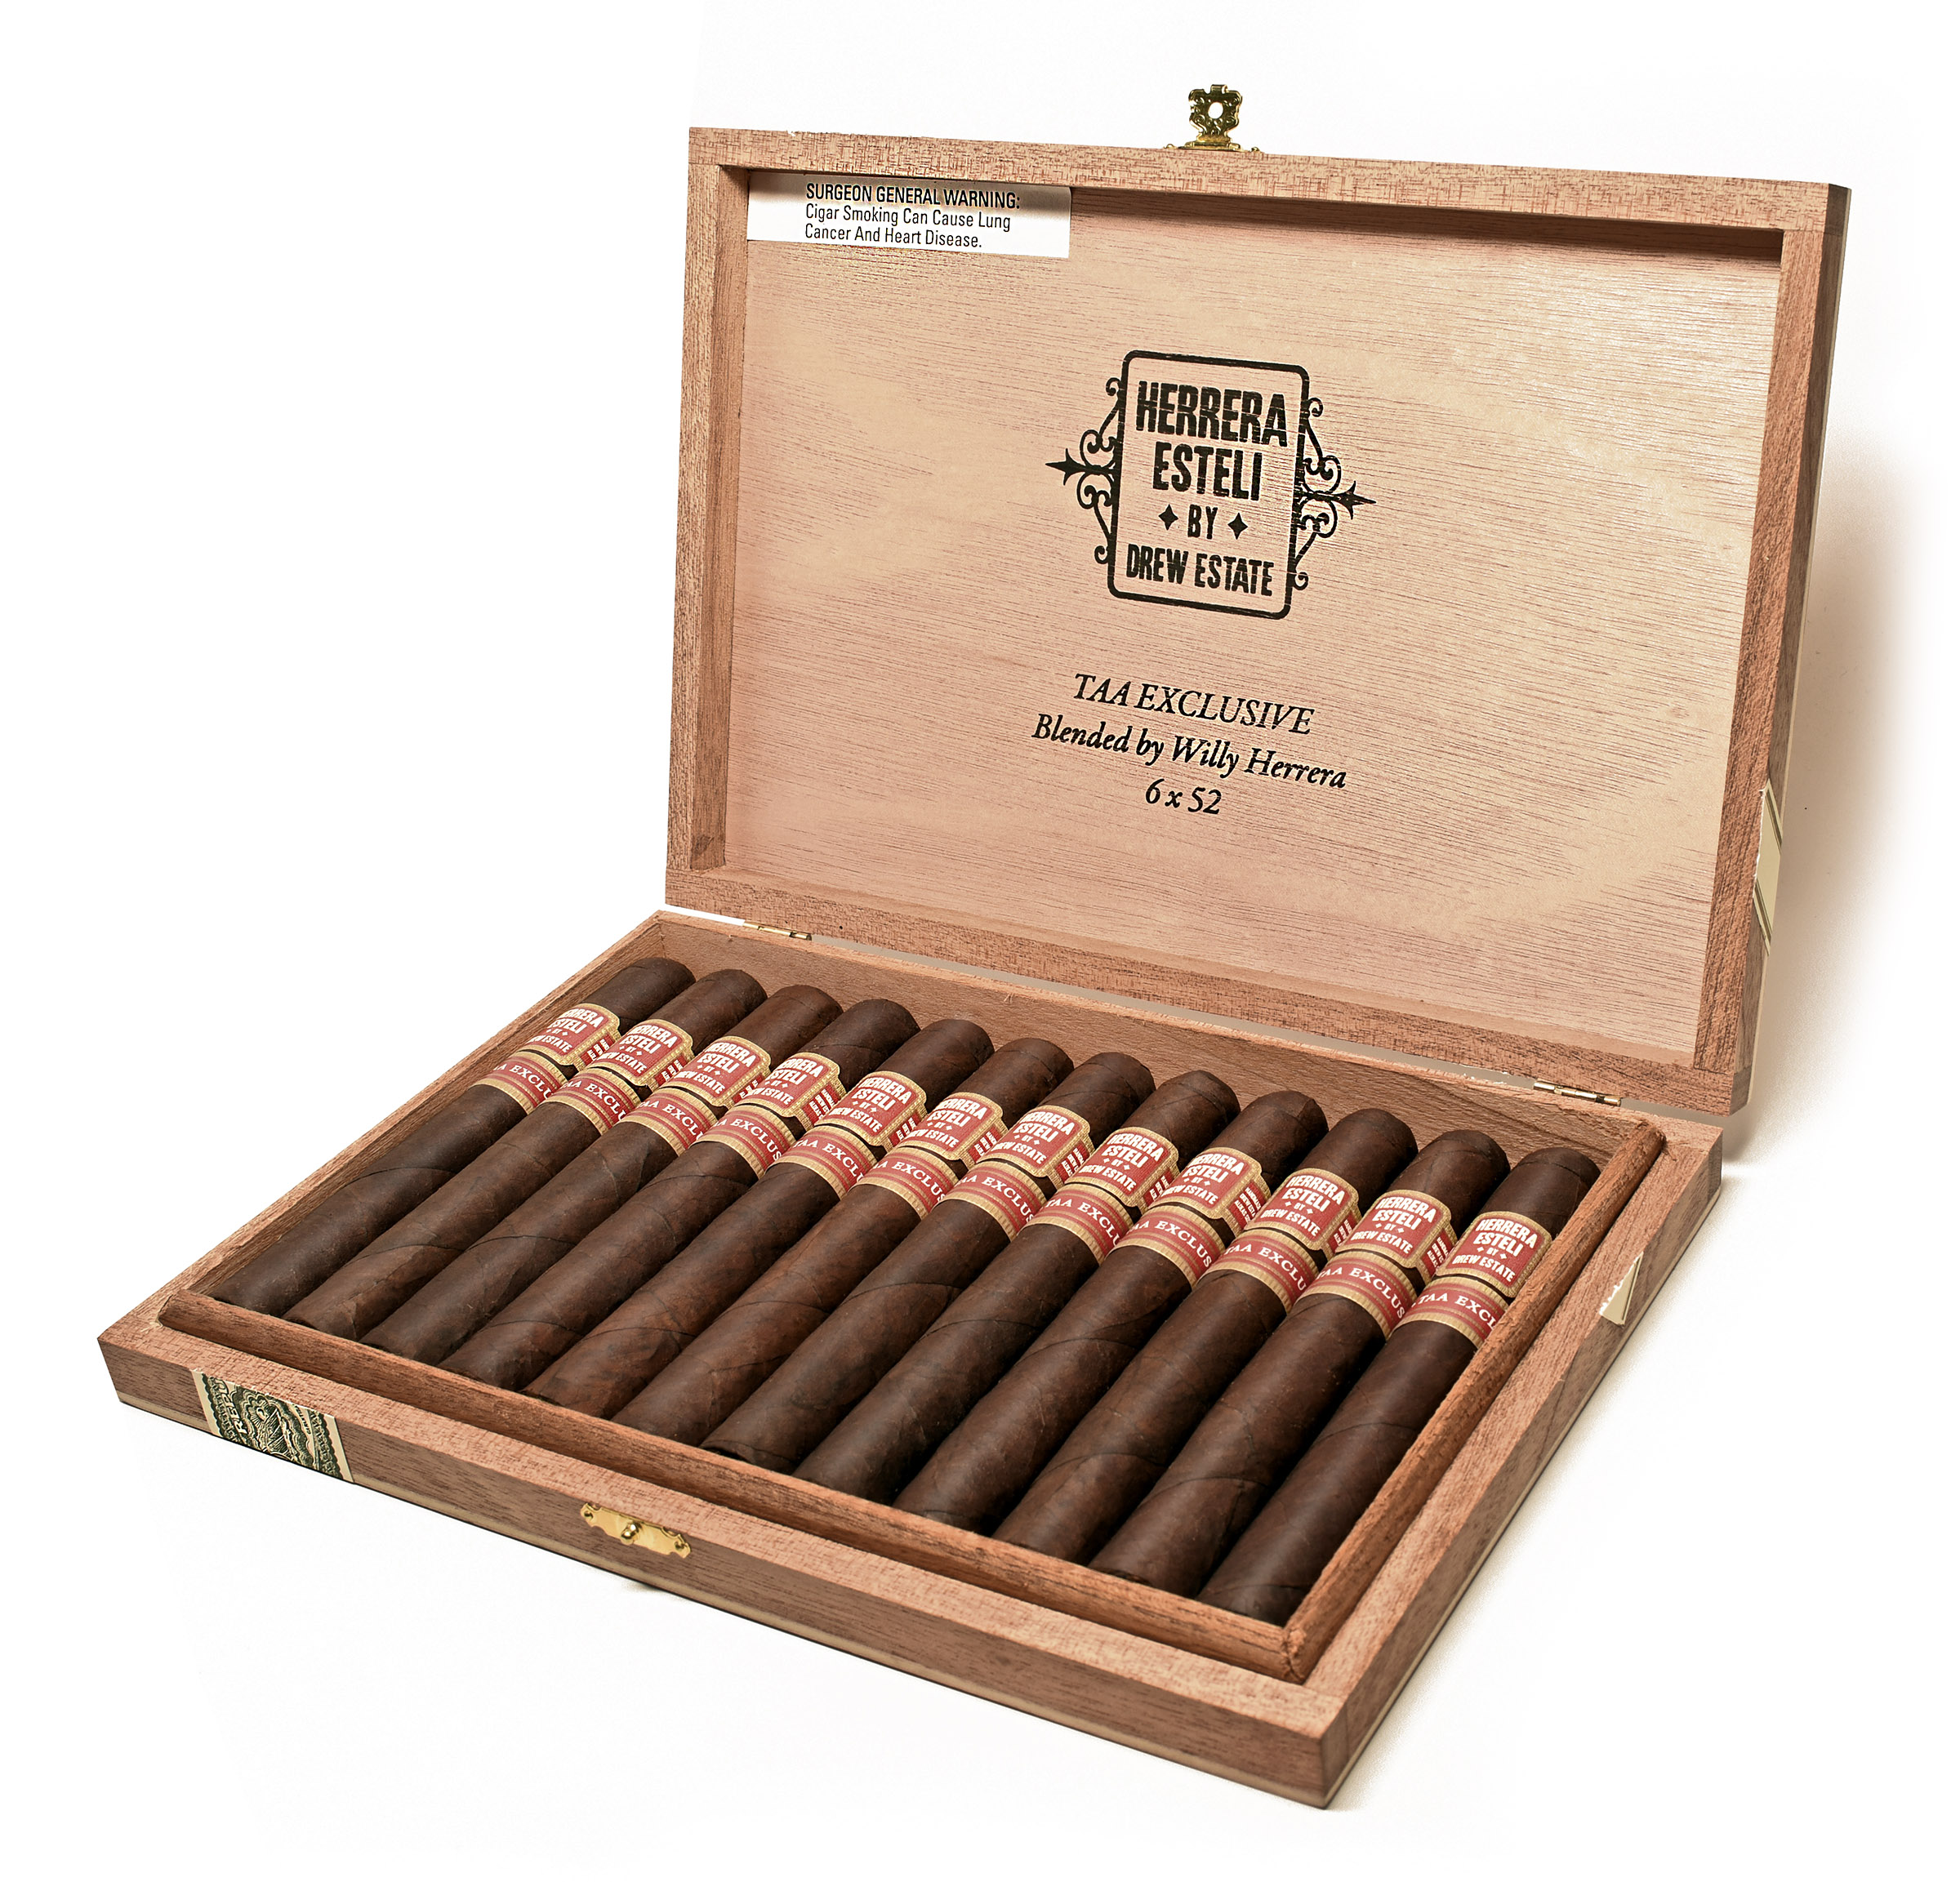 Drew_Estate_Herrera_Esteli_TAA_Exclusive